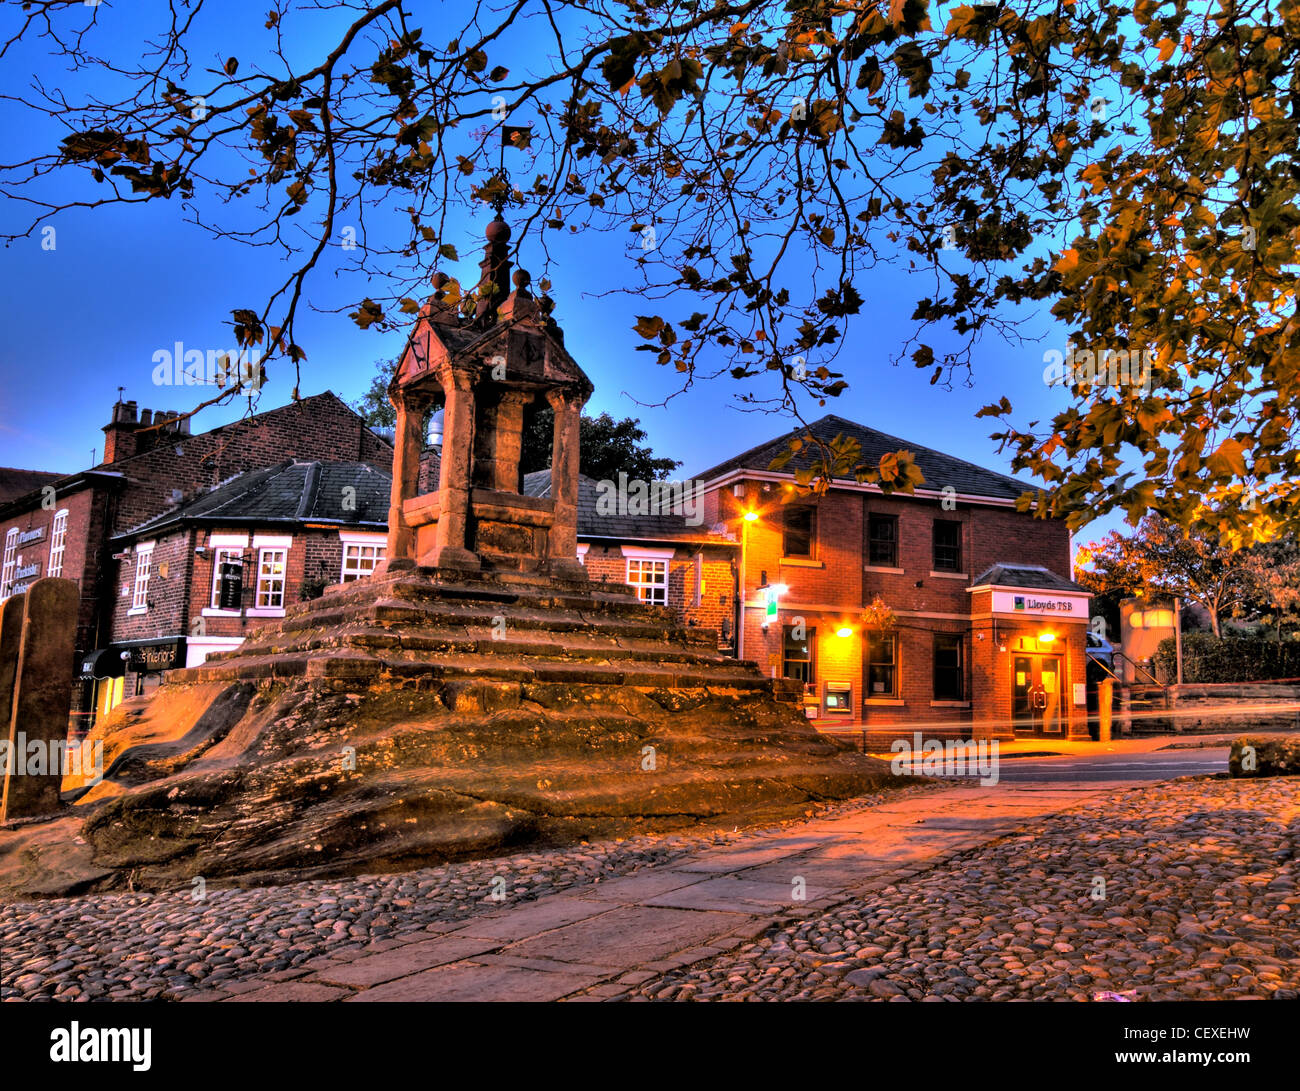 Autumn scene at Lymm Cross, Lymm village, Cheshire, England, UK - Stock Image